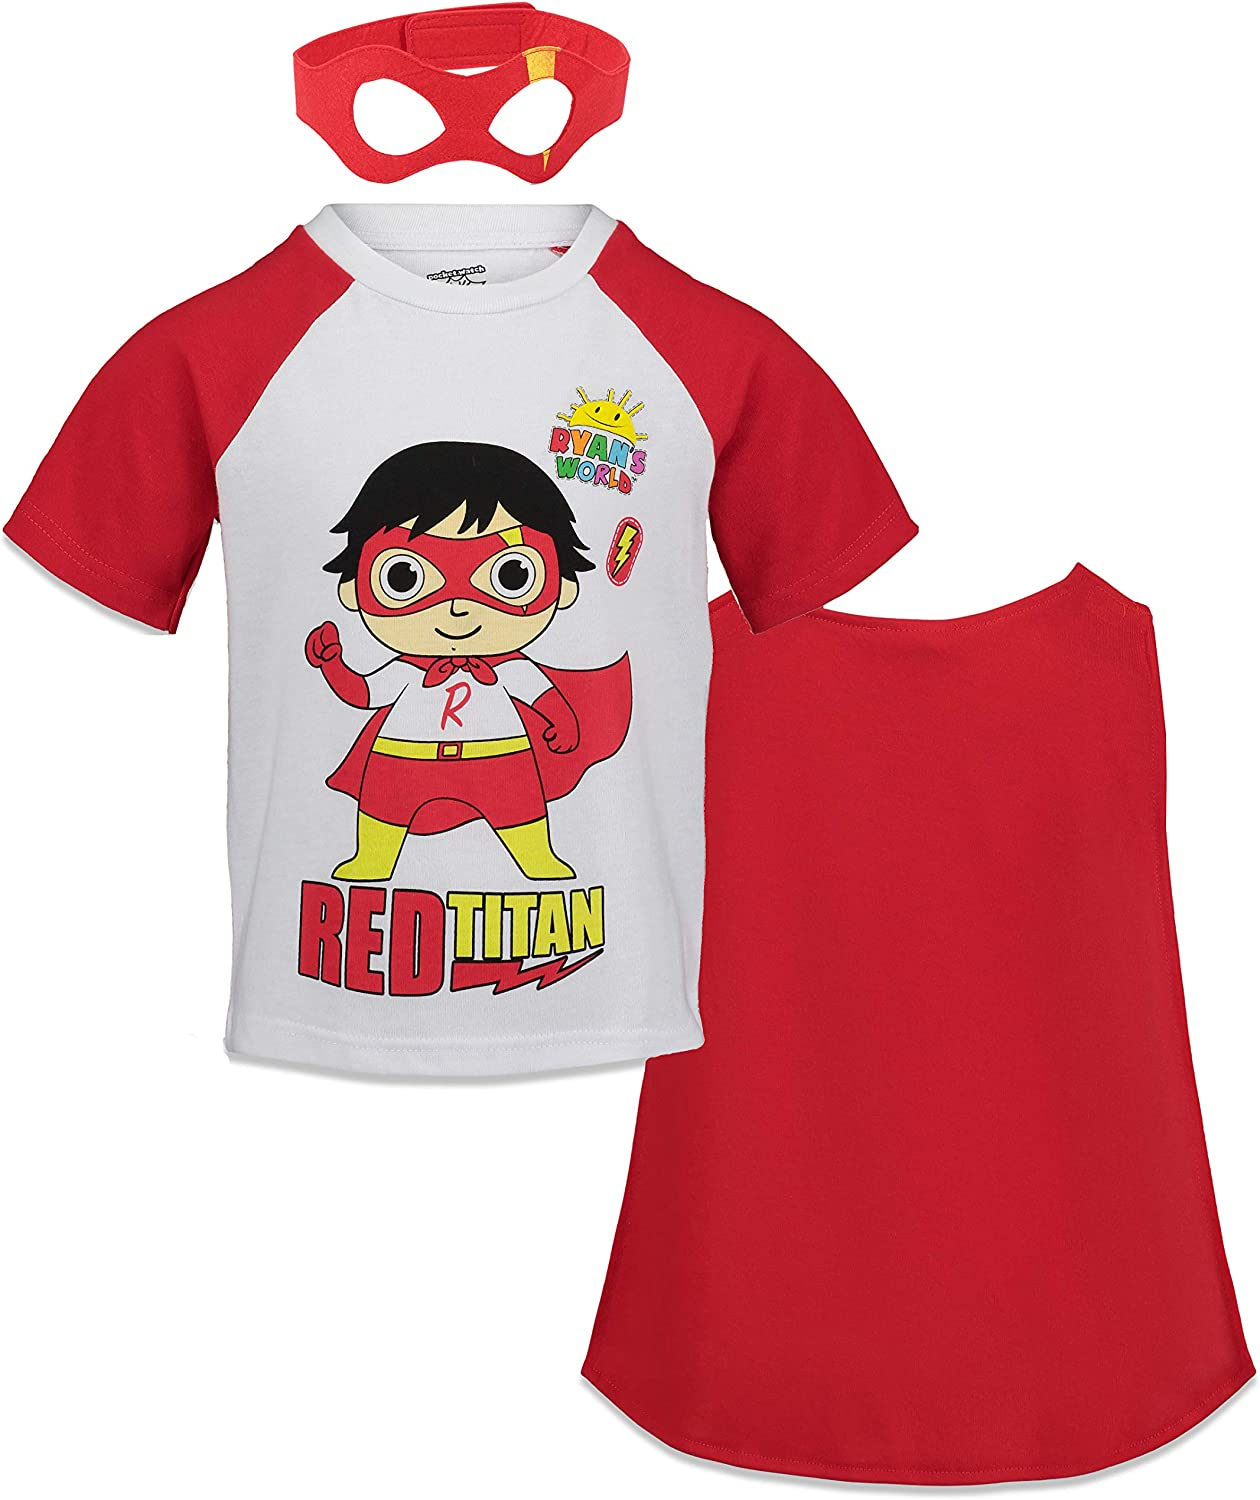 Ryan's World Red Titan Toddler Boys Superhero T-Shirt with Cape and Mask 5T: Clothing